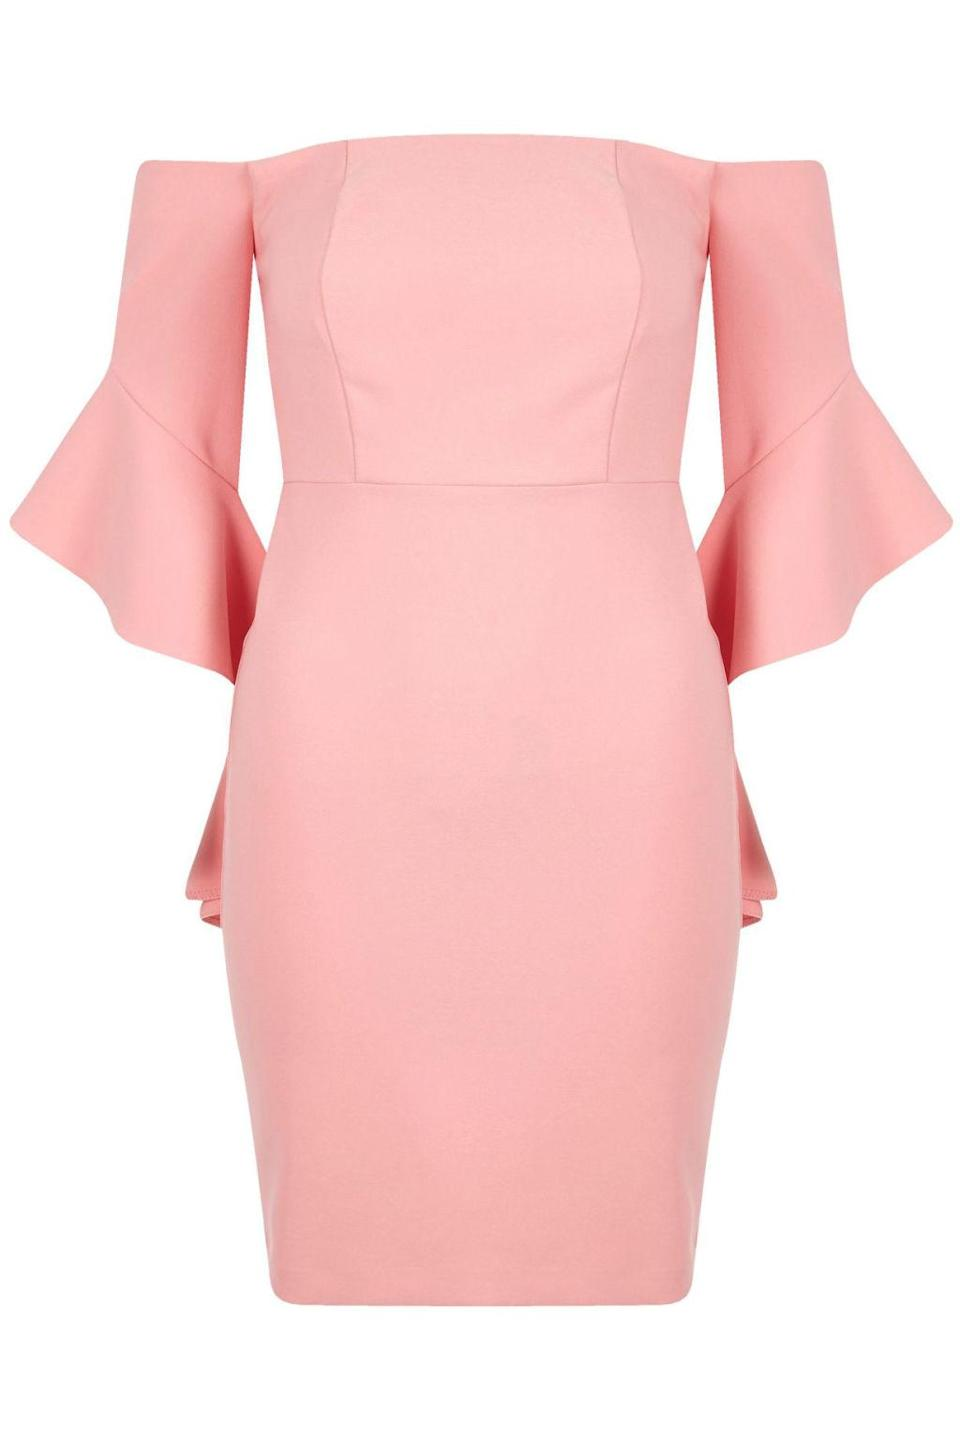 "<p><em>Petit Pink Frill Sleeve Bardot Bodycon Dress, RIVER ISLAND, $100</em></p><p><a href=""https://us.riverisland.com/women/dresses/bardot--bandeau-dresses/petite-pink-frill-sleeve-bardot-bodycon-dress-700891"" rel=""nofollow noopener"" target=""_blank"" data-ylk=""slk:BUY NOW"" class=""link rapid-noclick-resp"">BUY NOW</a></p>"